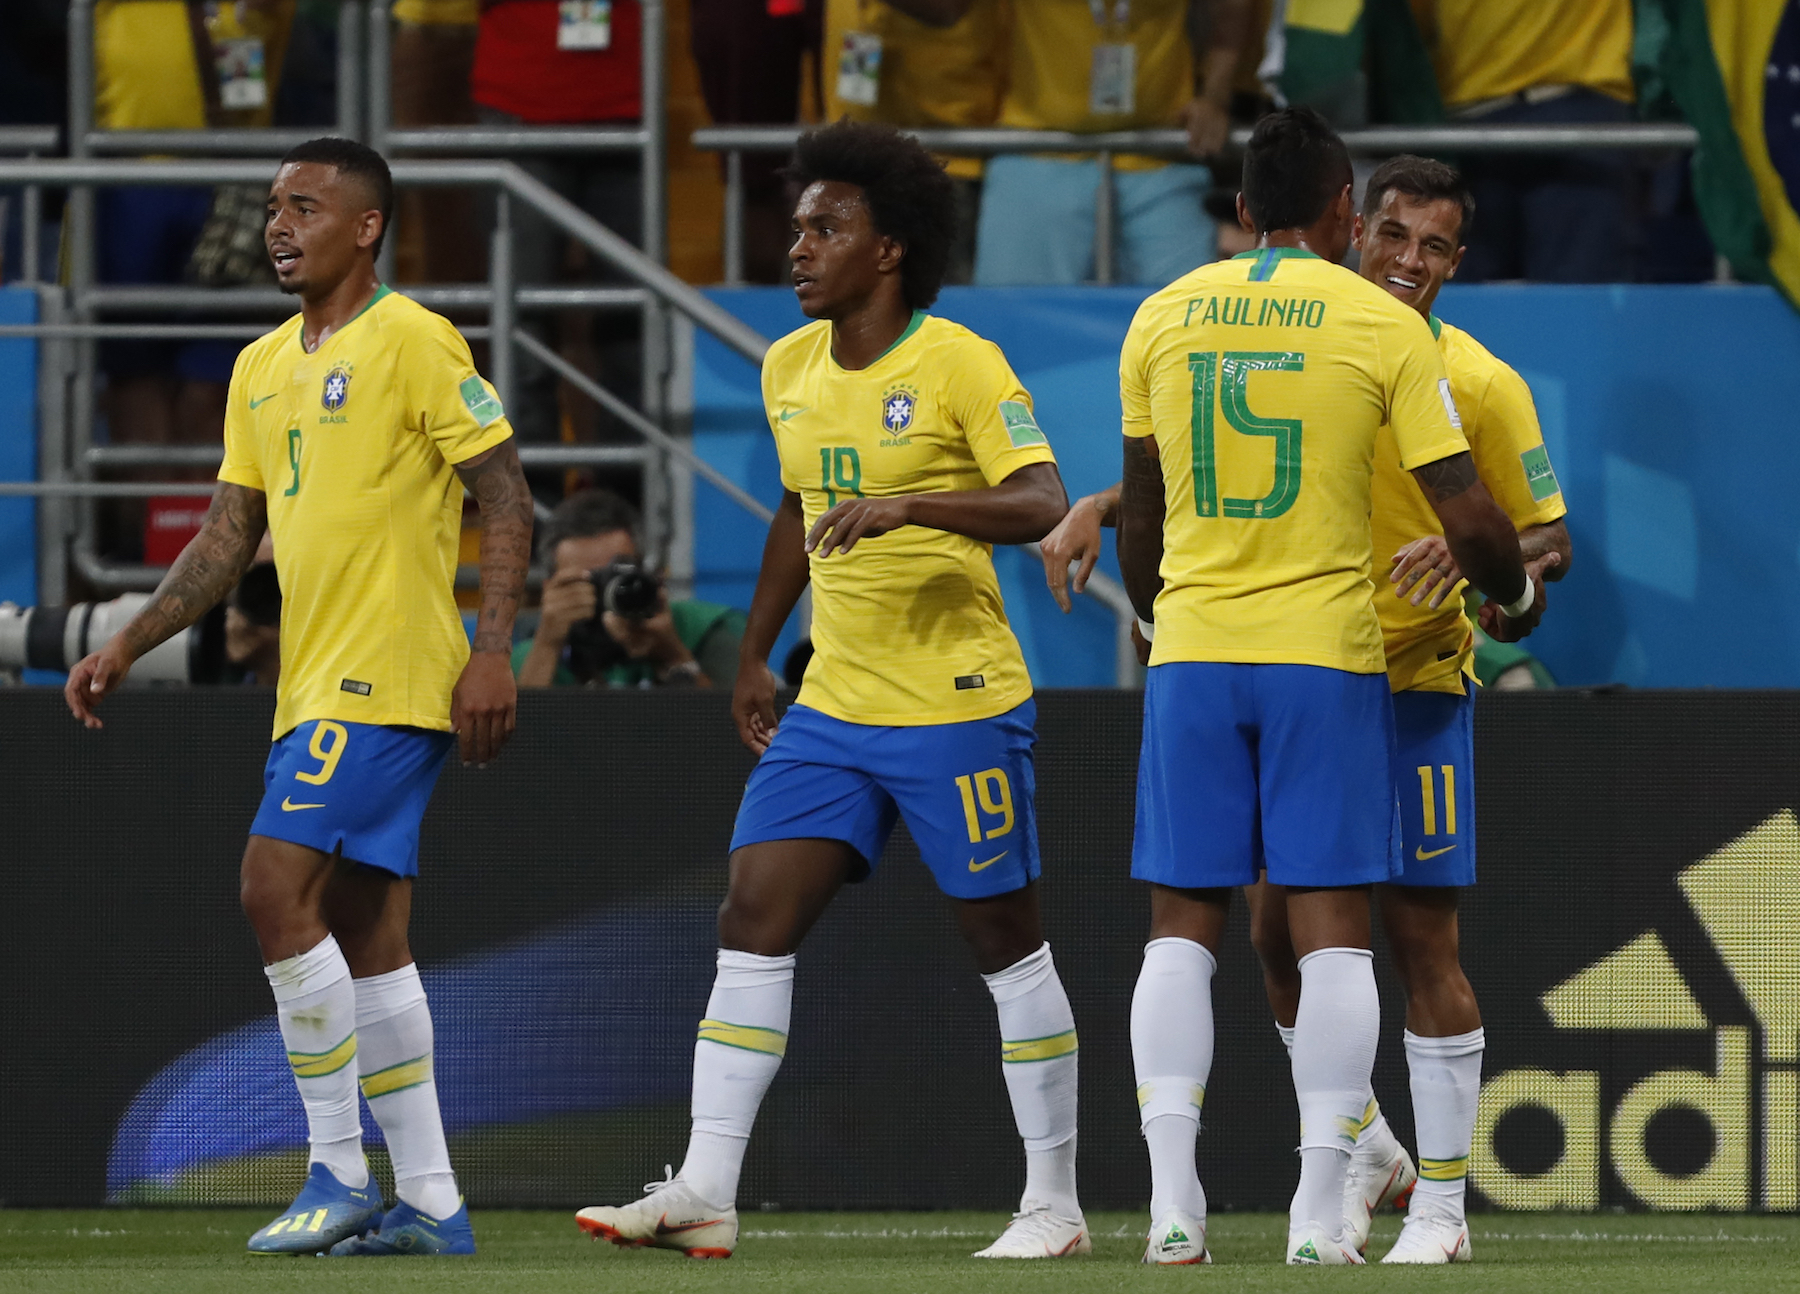 <div class='meta'><div class='origin-logo' data-origin='AP'></div><span class='caption-text' data-credit='AP Photo/Darko Vojinovic'>Brazil's Philippe Coutinho, right, celebrates after scoring with his teammate Paulinho during the group E match between Brazil and Switzerland at the 2018 soccer World Cup.</span></div>